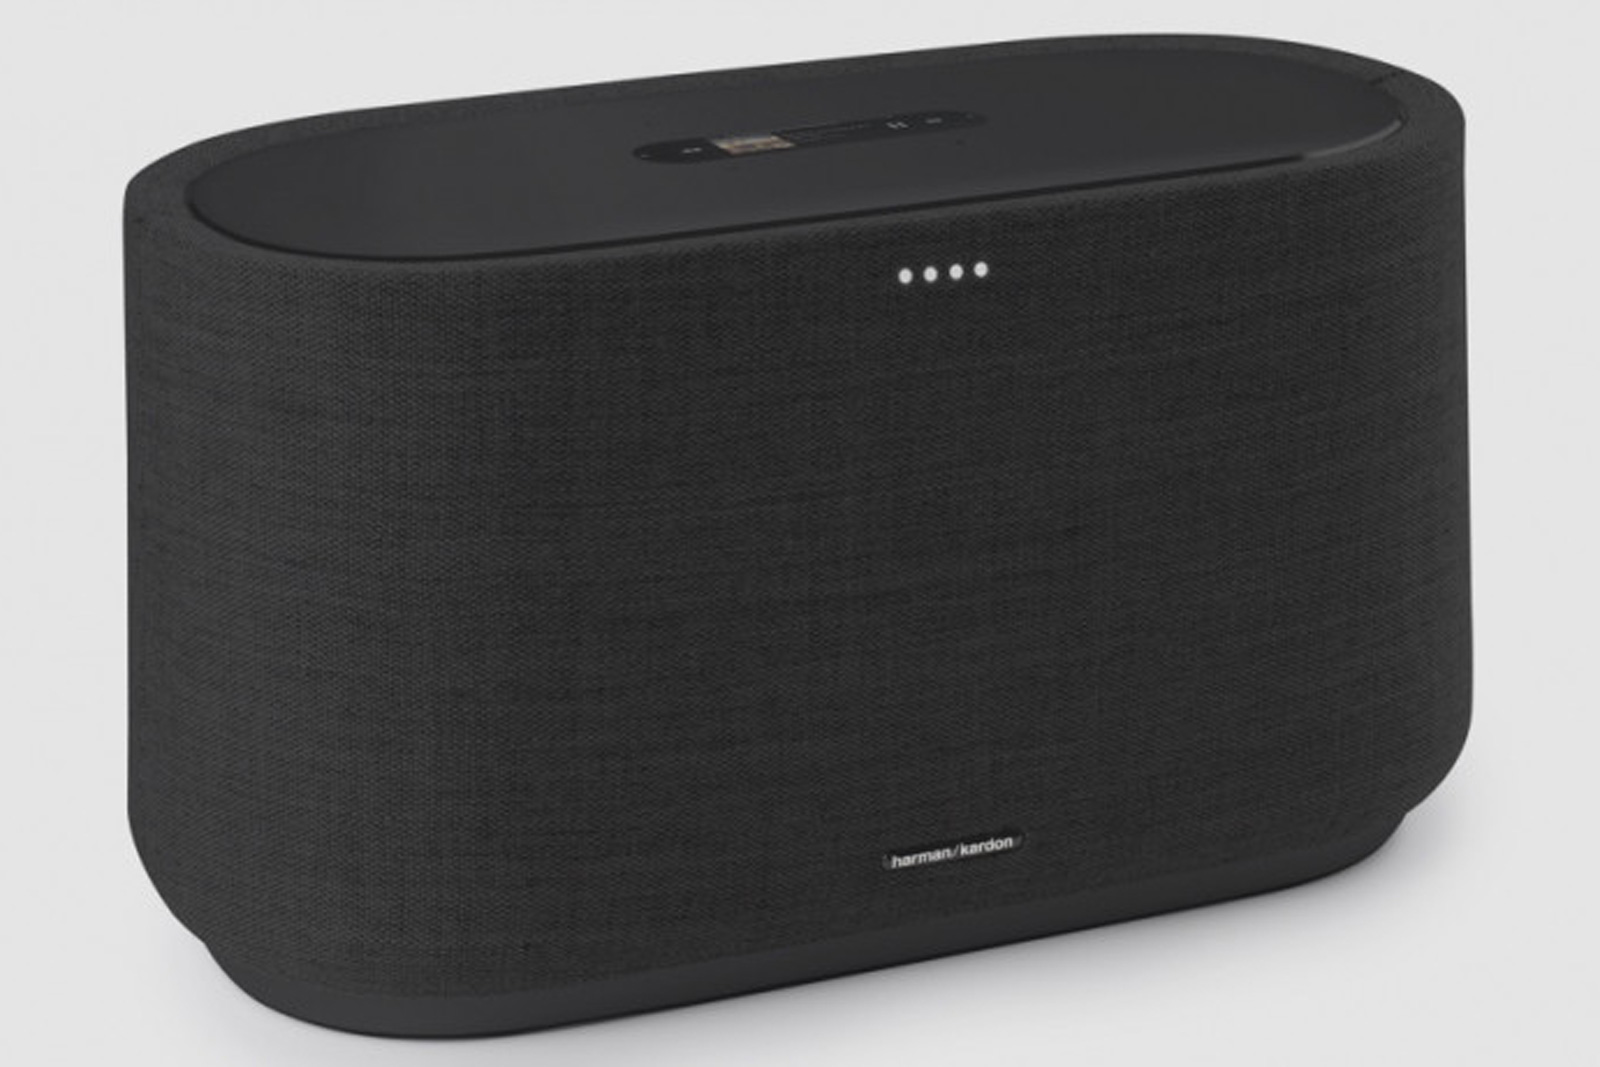 harman kardon s google assistant speaker packs 200w of. Black Bedroom Furniture Sets. Home Design Ideas